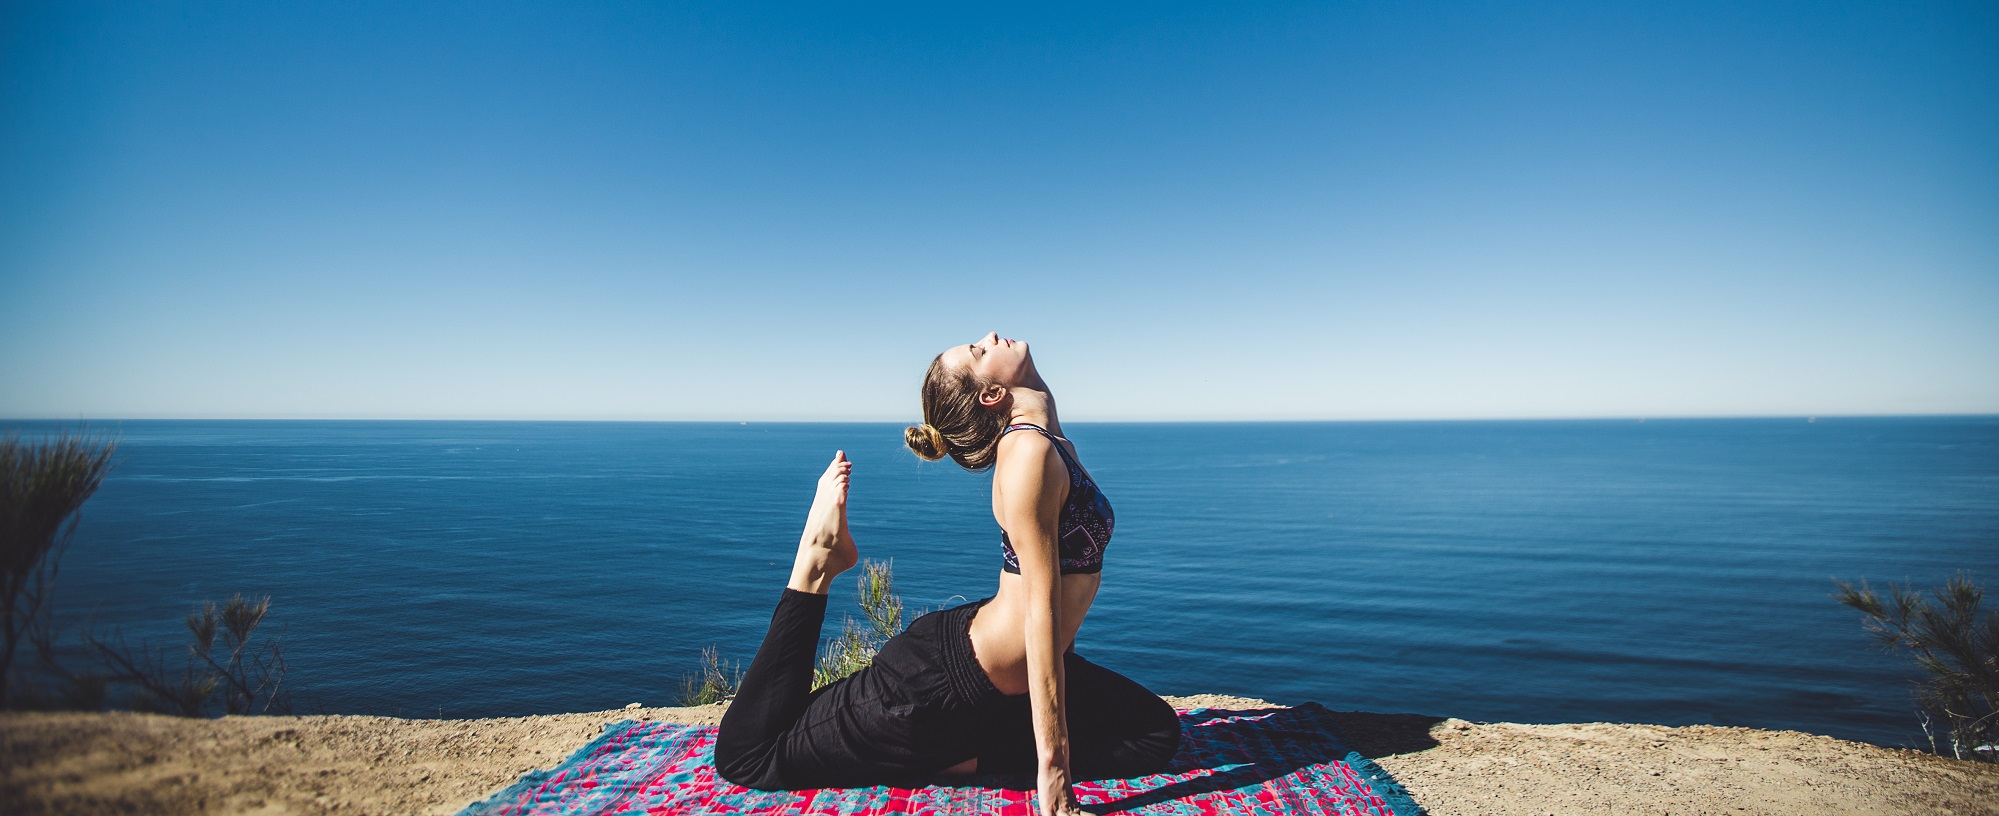 What are the easiest hatha yoga poses? 5